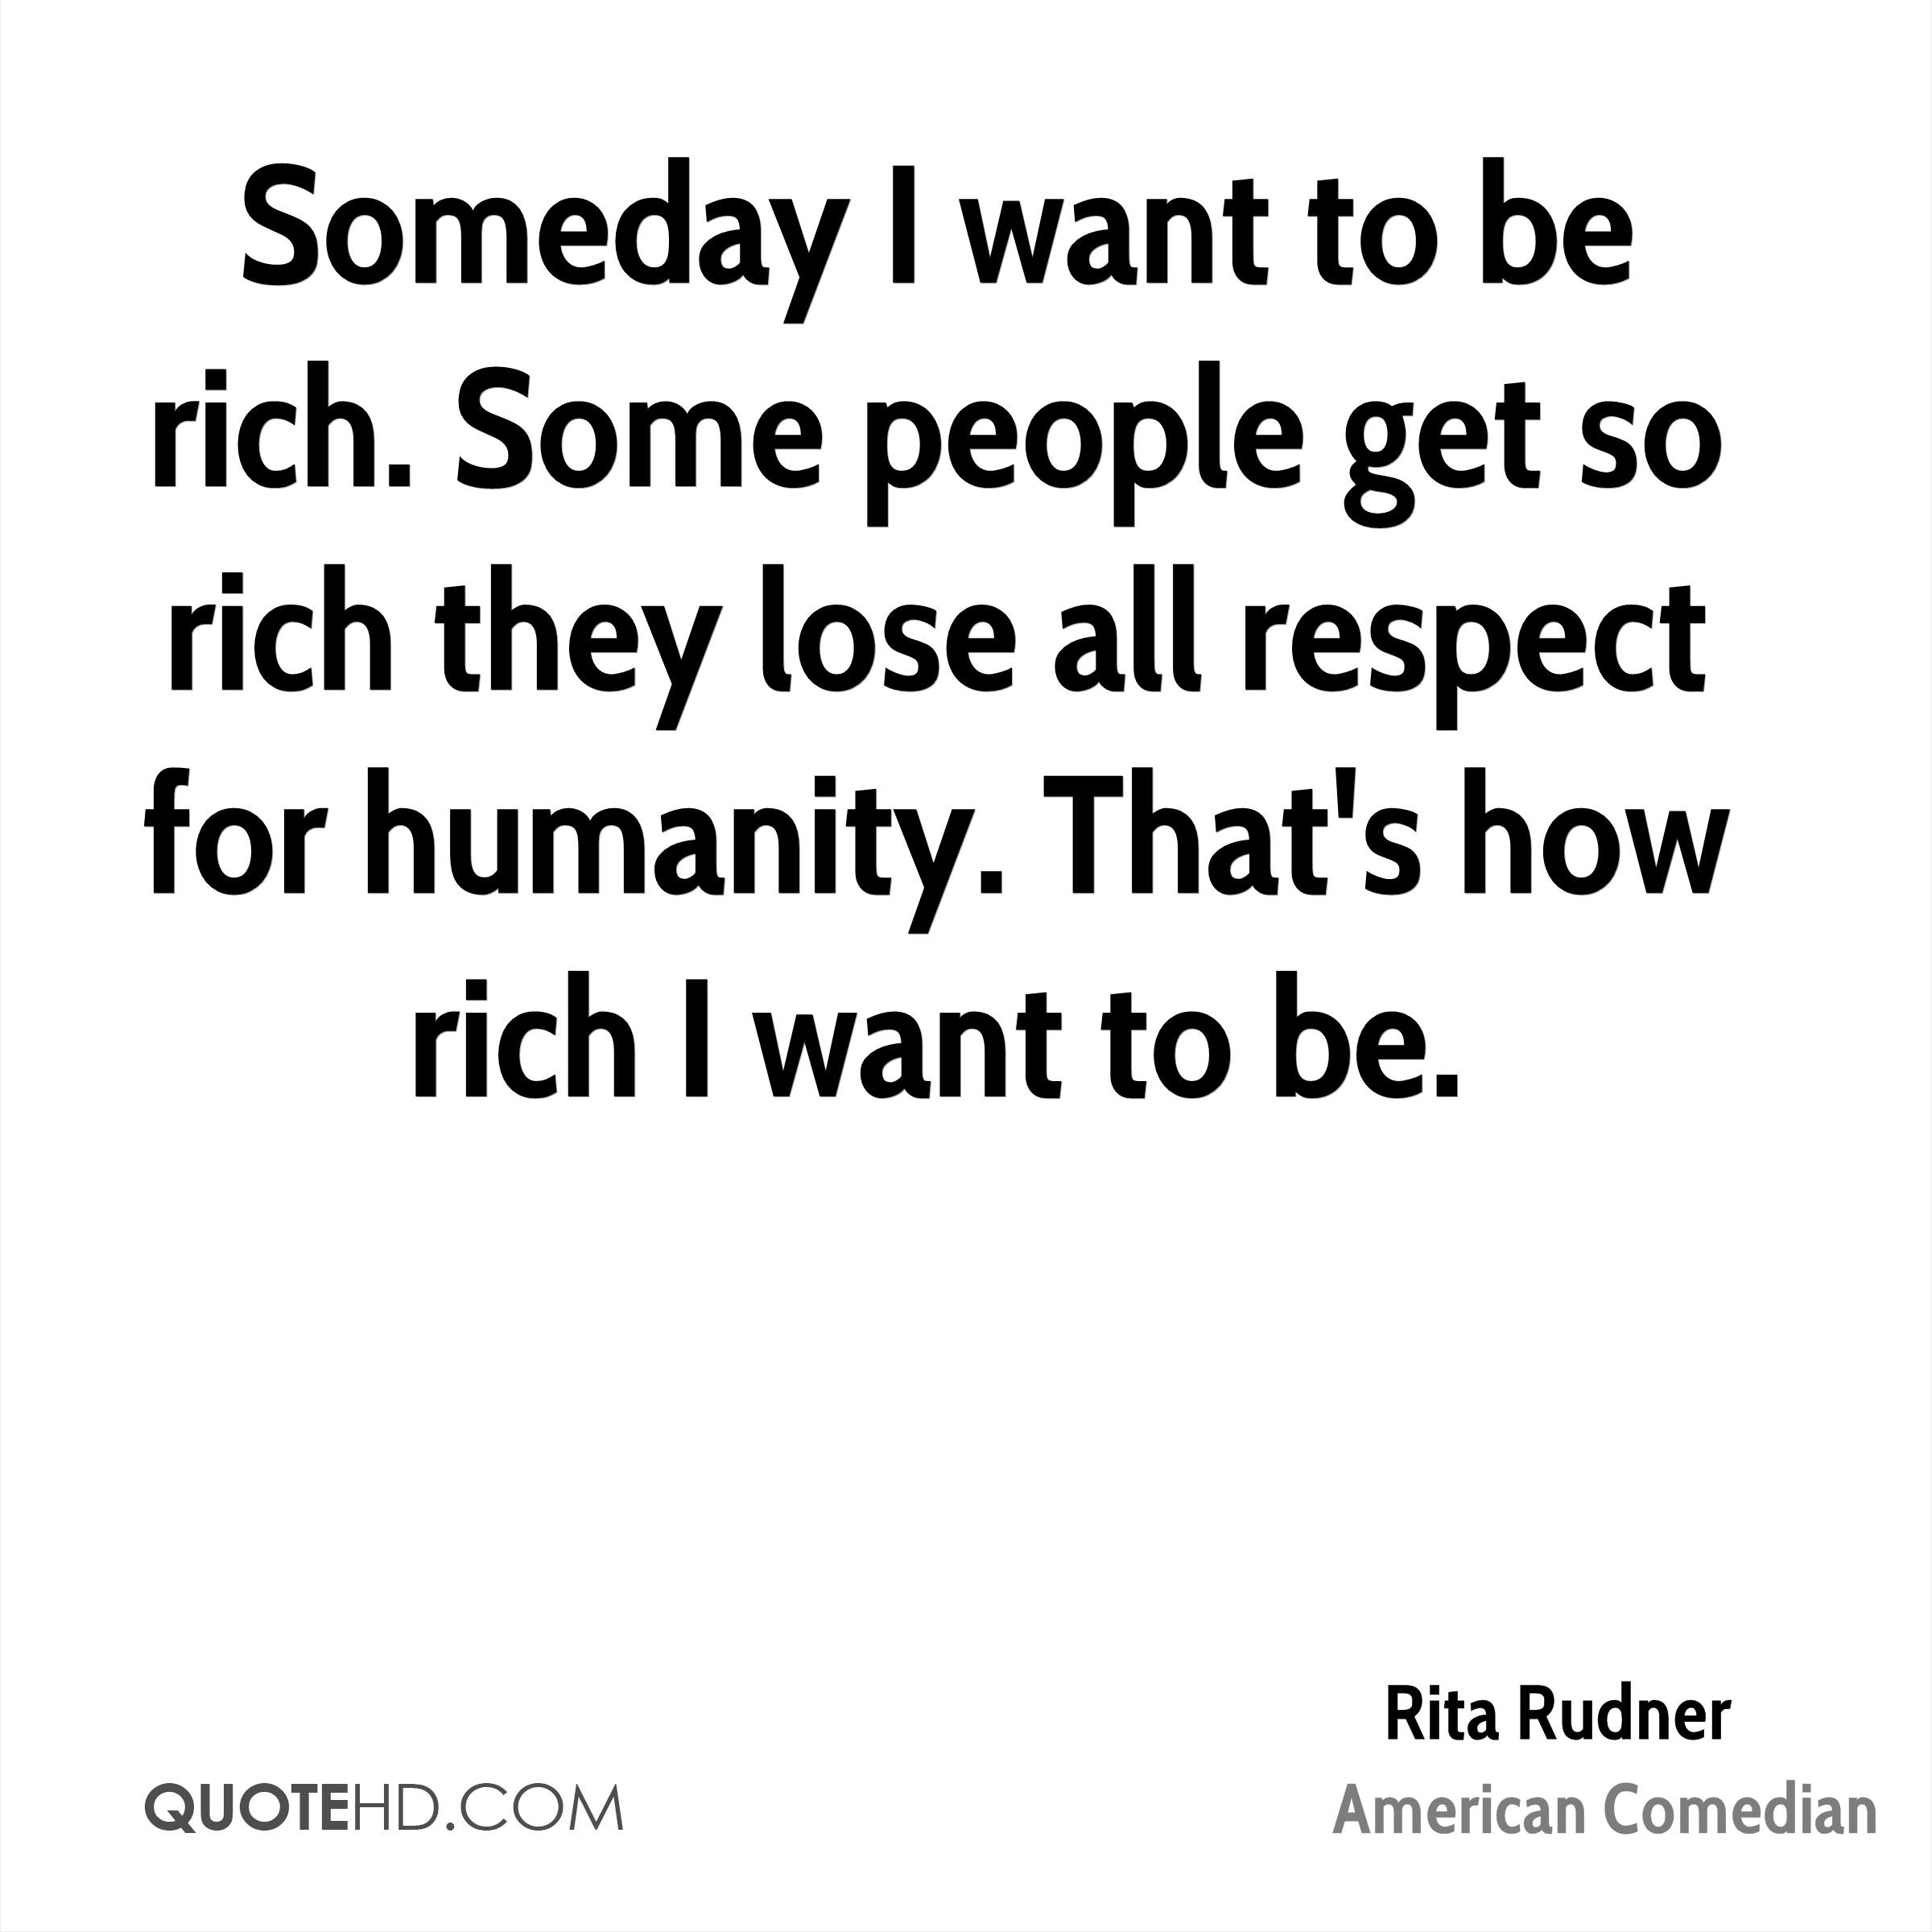 Someday I want to be rich. Some people get so rich they lose all respect for humanity. That's how rich I want to be.